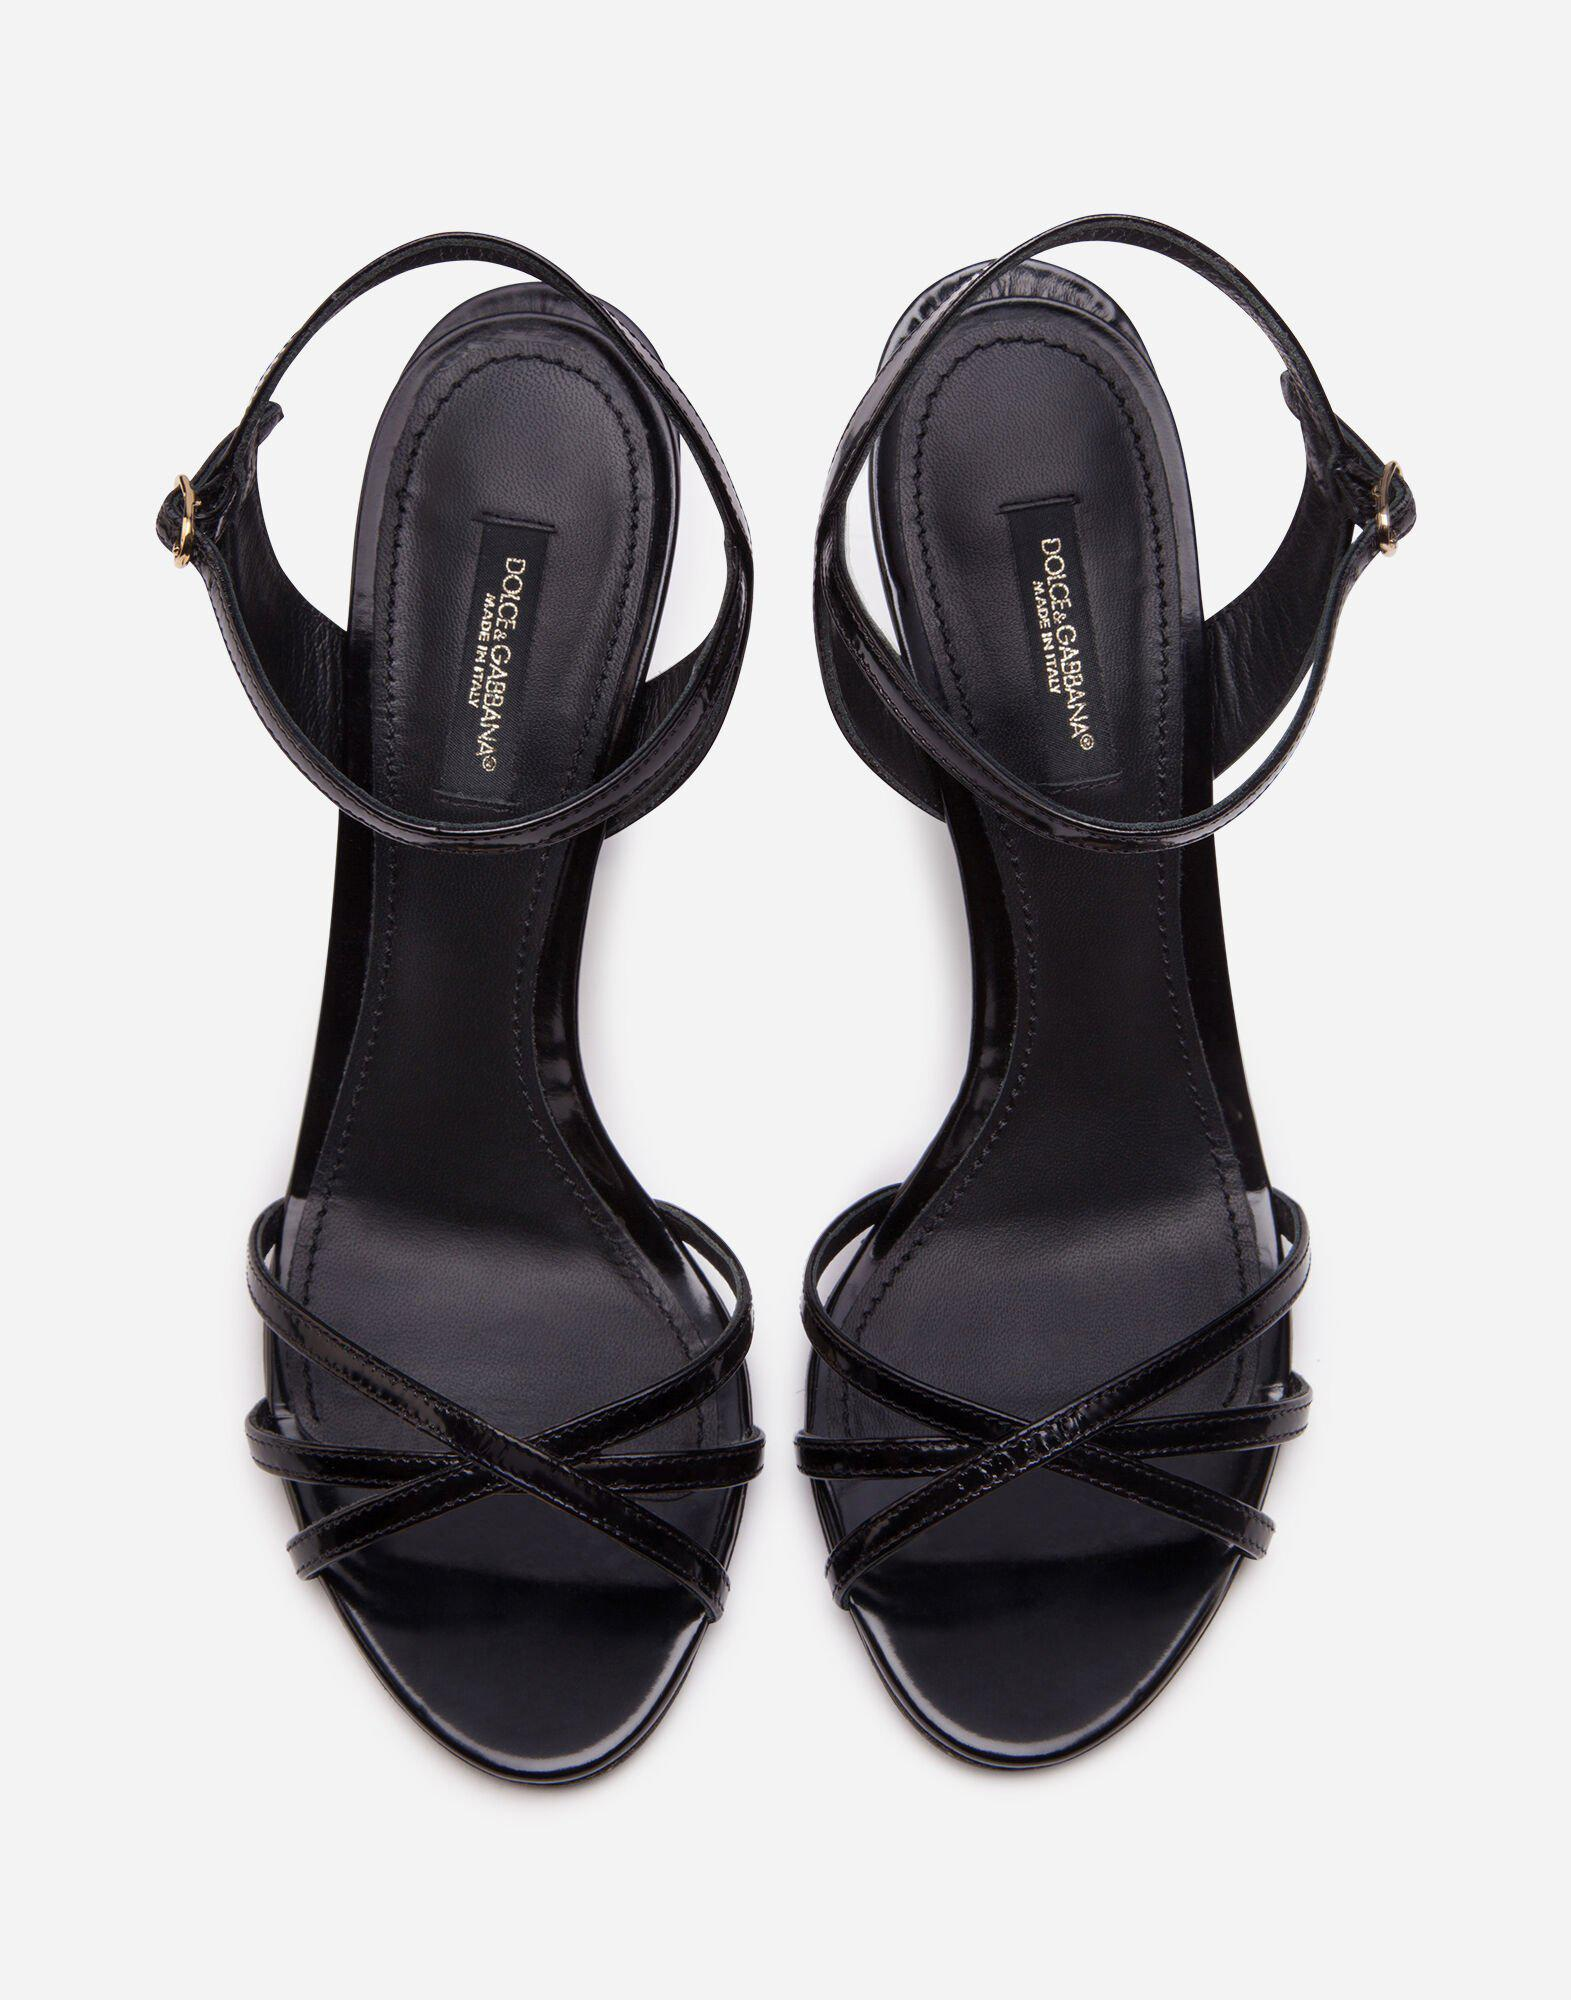 Leather sandals 3